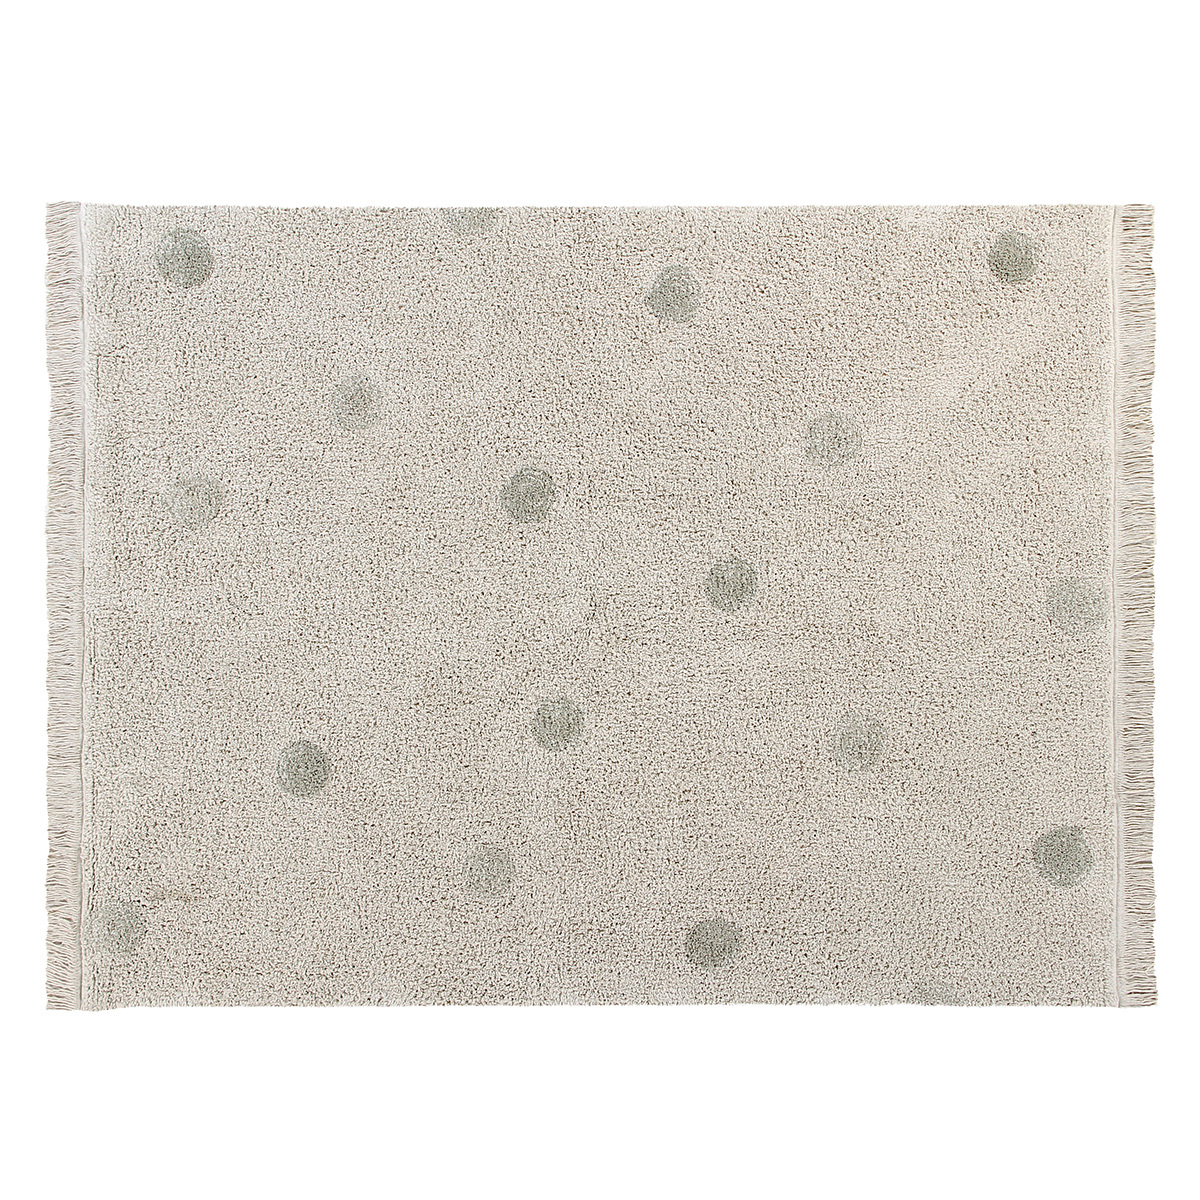 Tapis Tapis Lavable Hippy Dots Naturel et Olive - 120 x 160 cm Tapis Lavable Hippy Dots Naturel et Olive - 120 x 160 cm